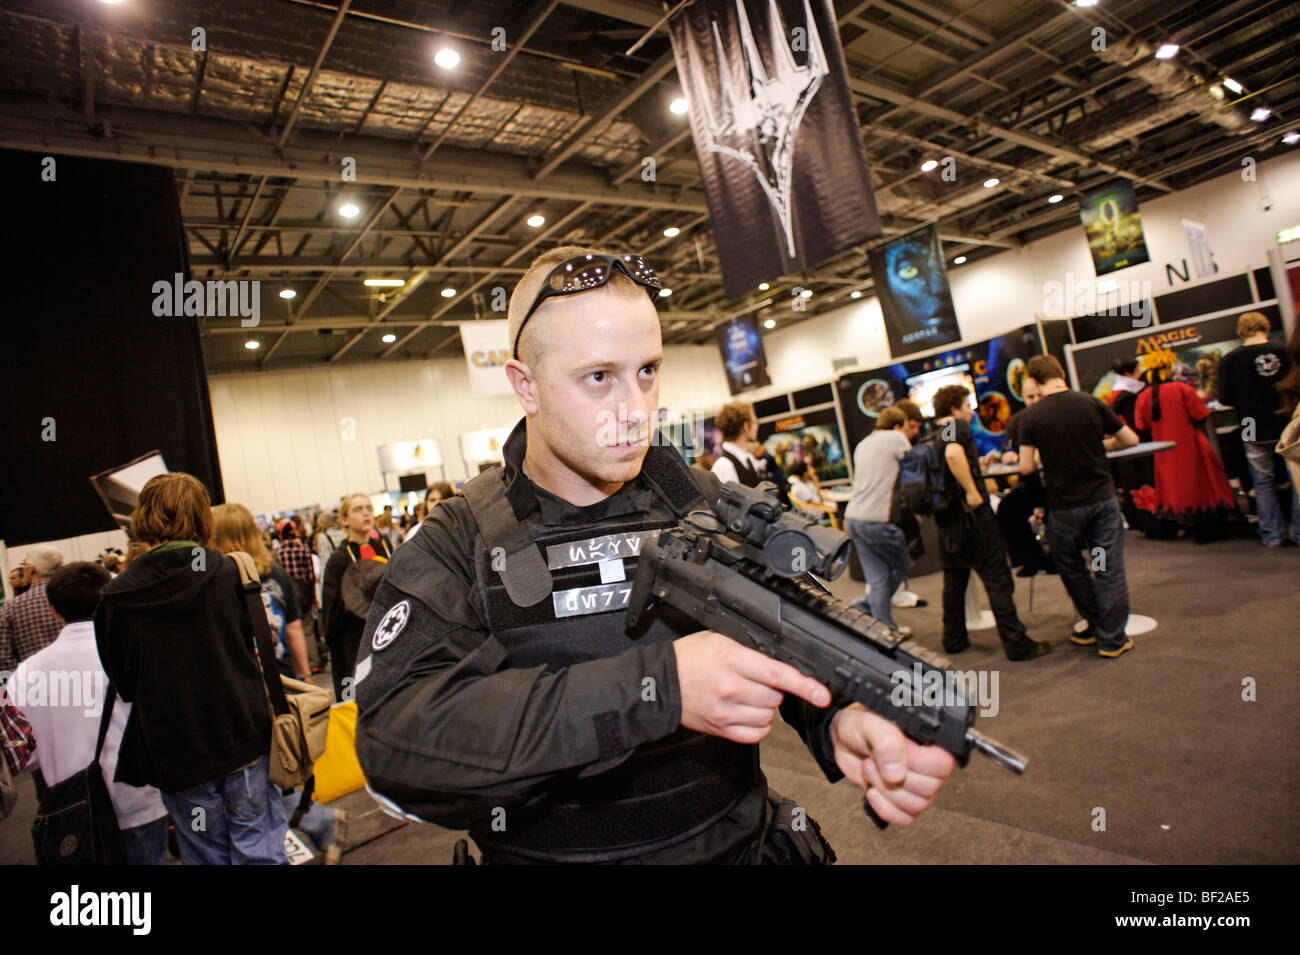 Fan with fake gun dressed as costume character patrolling at the London MCM expo. Excel. Britain 2009. - Stock Image